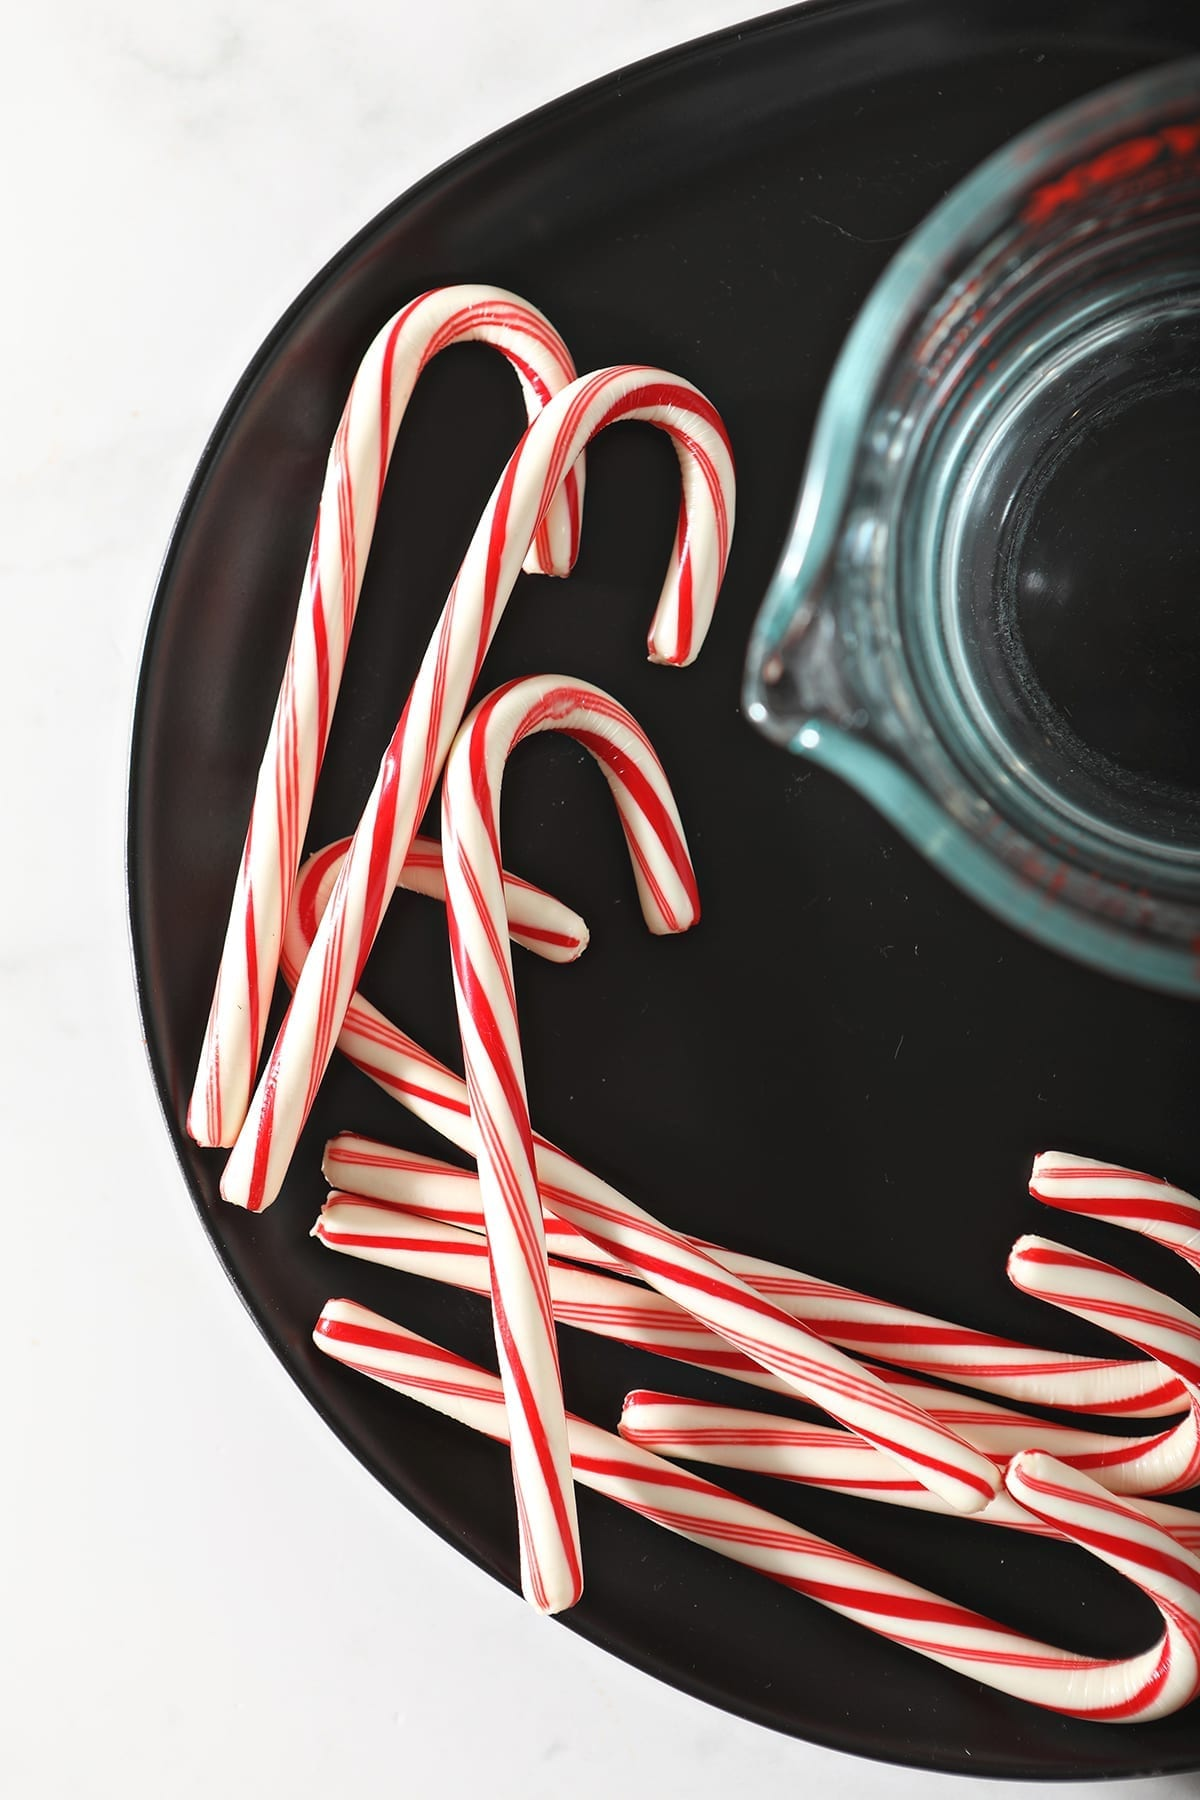 Close up of candy canes next to a measuring cup of vodka on a black plate